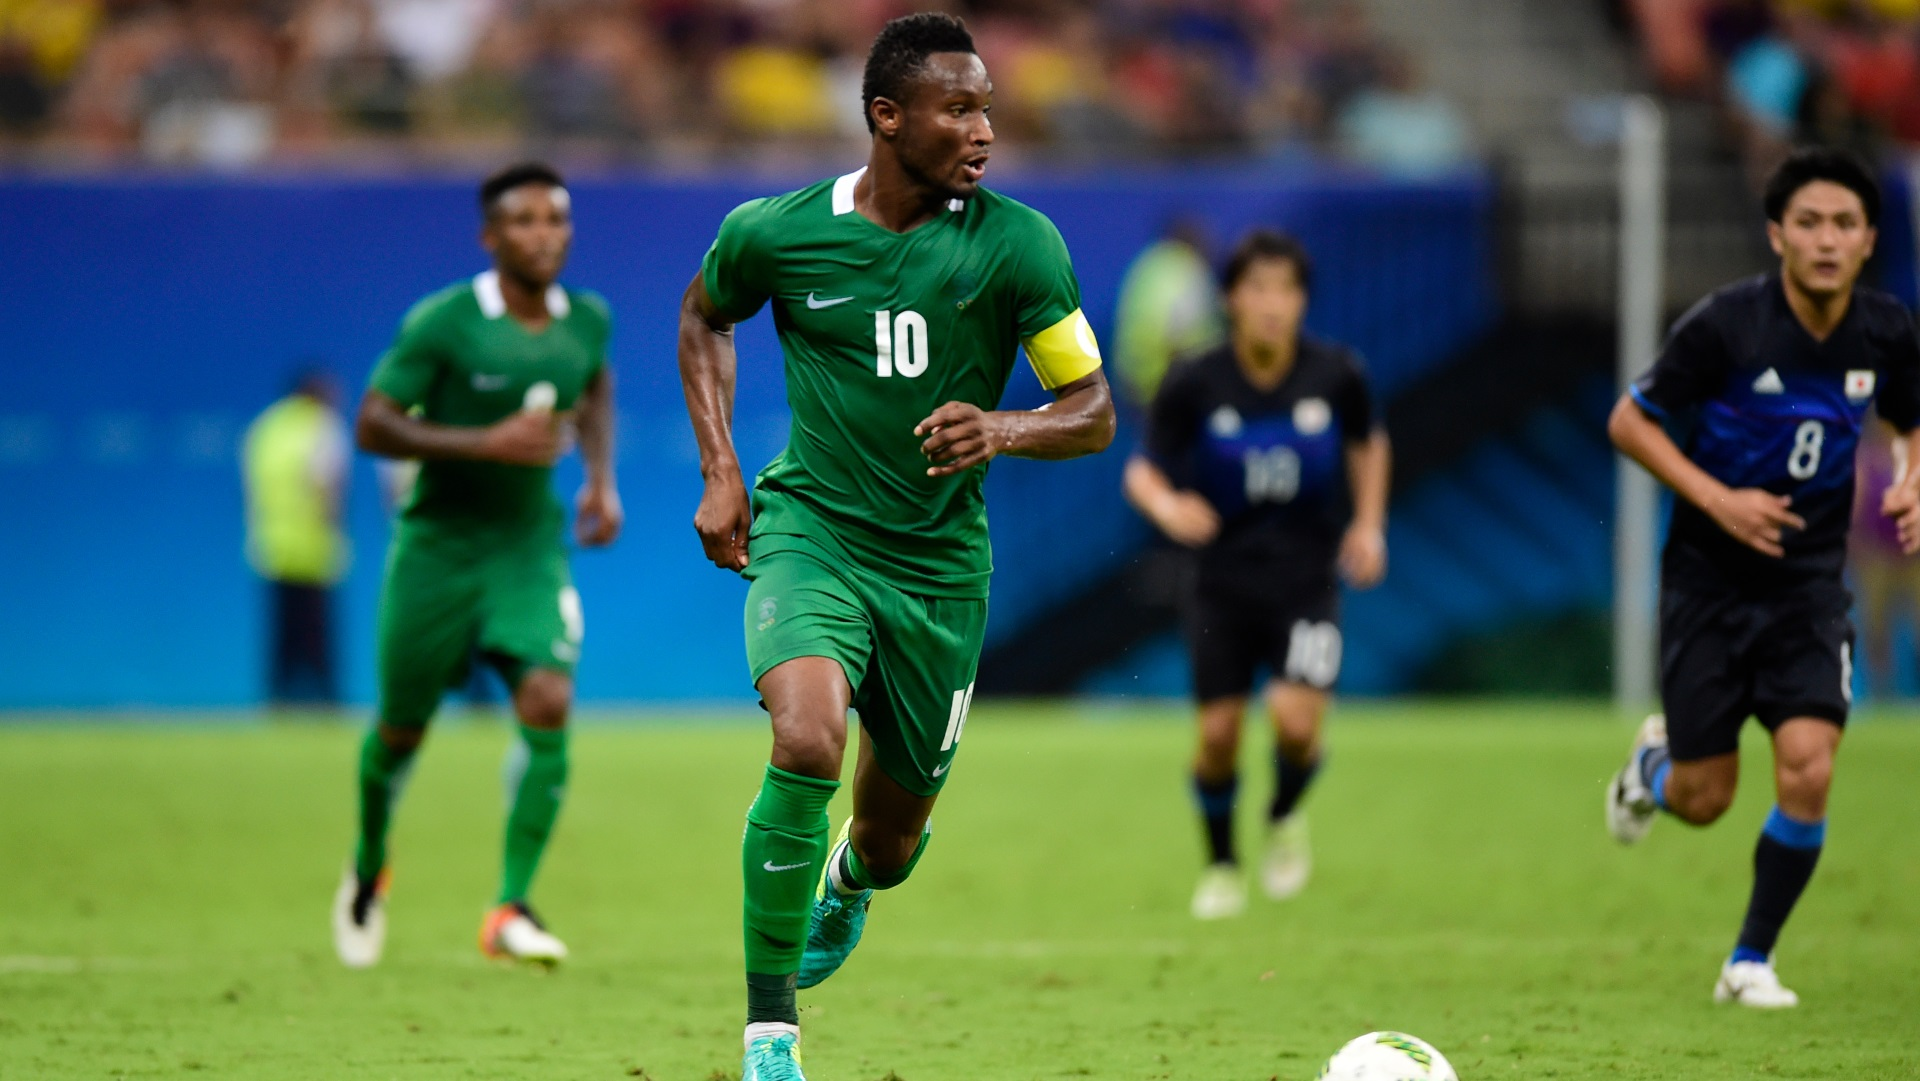 Super Eagles to grab Russia 2018 world cup spot against Zambia, Mikel